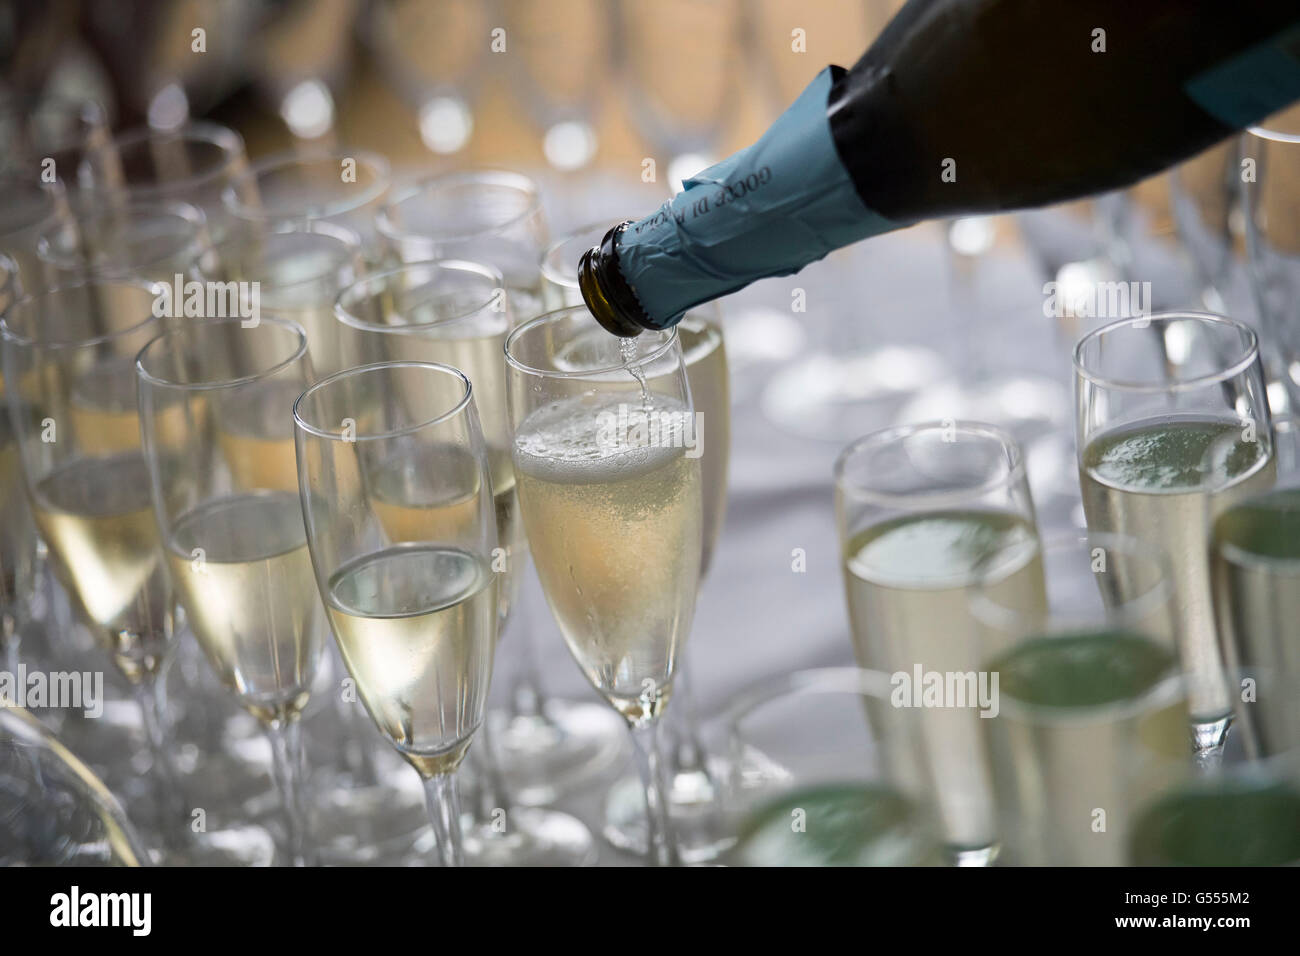 Champagne served in glasses from a bottle during a champagne reception. - Stock Image